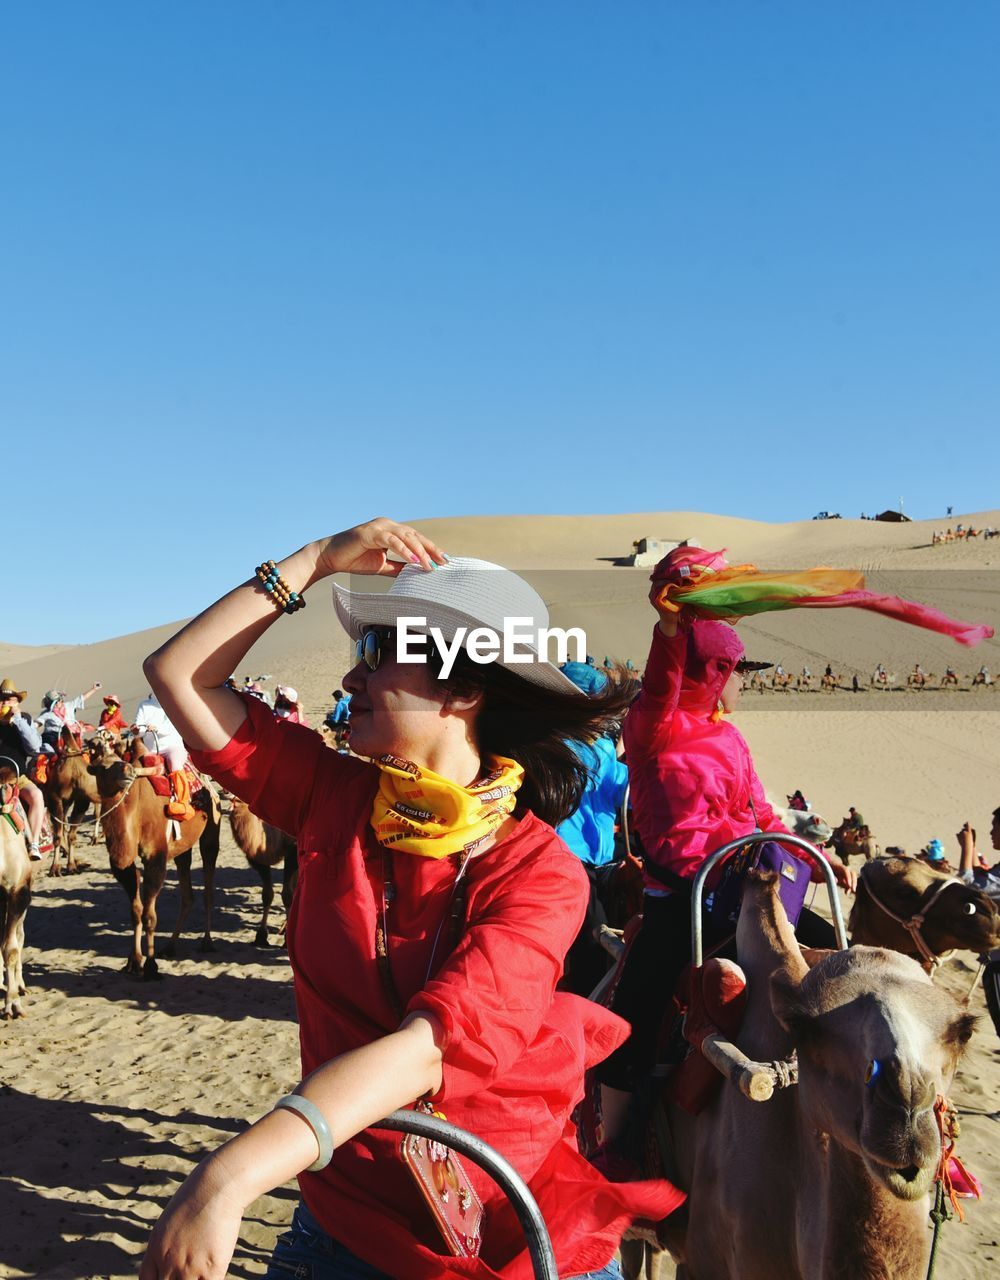 People at desert against clear blue sky during sunny day